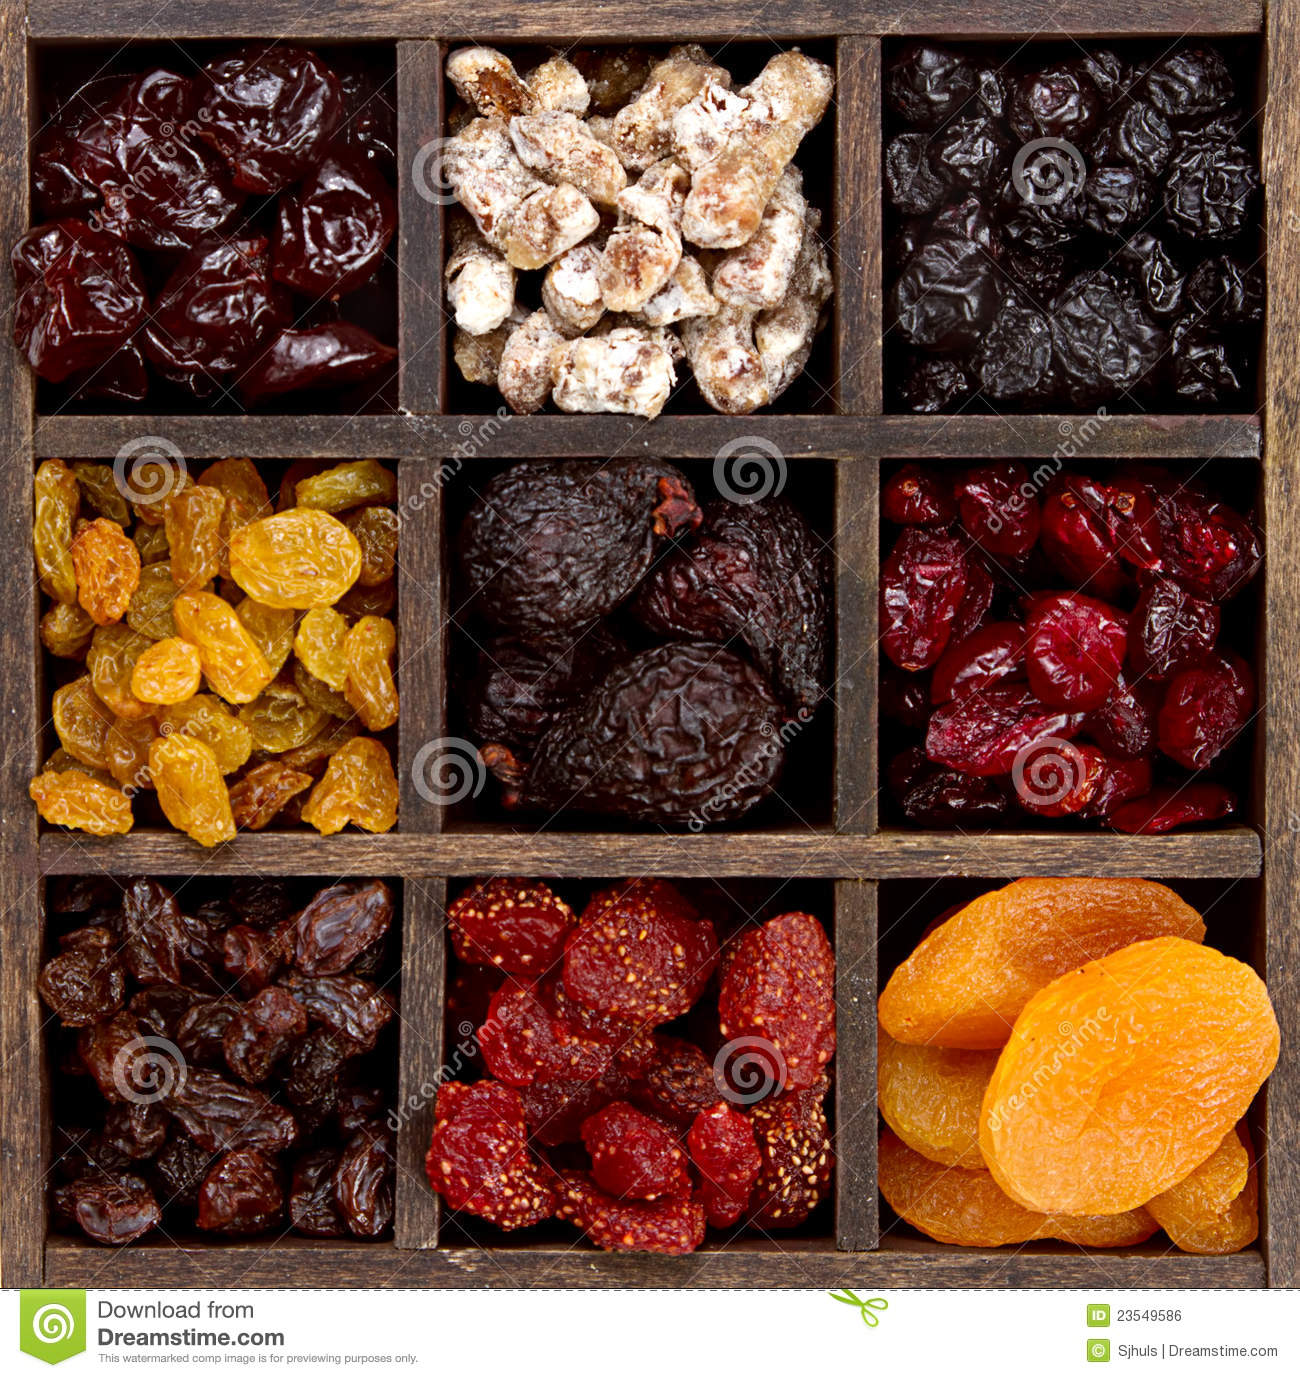 Dry Fruits and Raisins